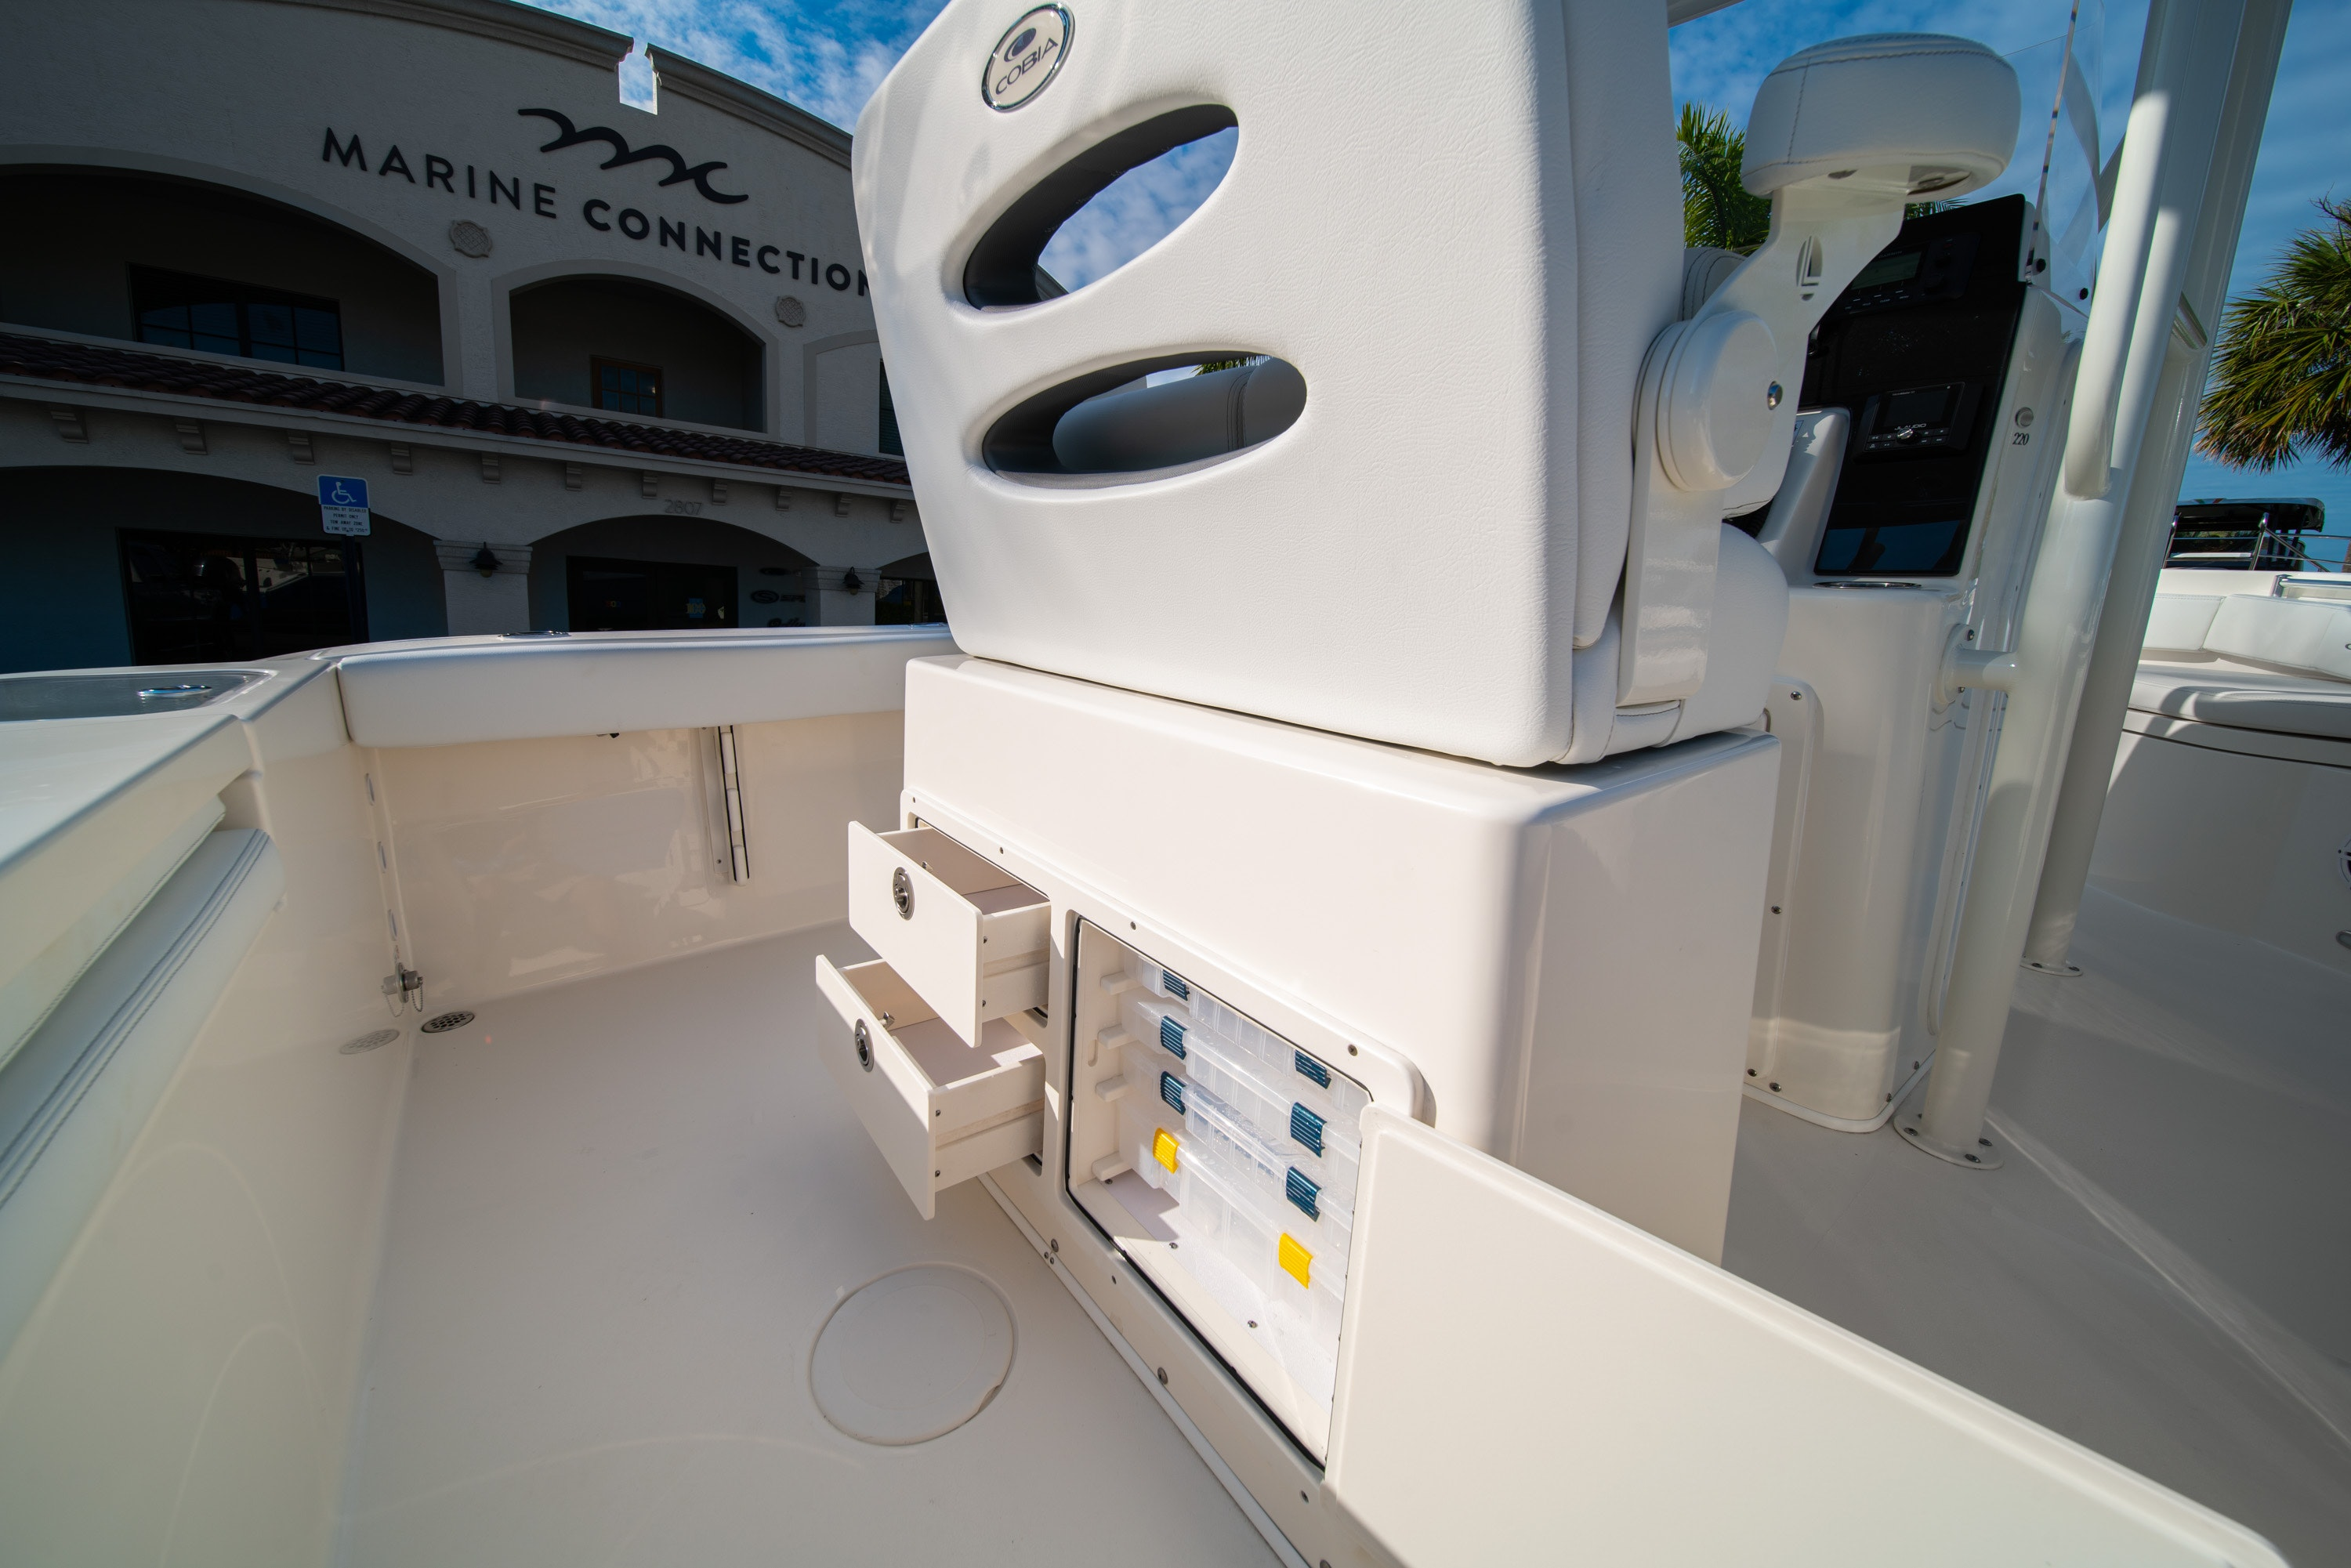 Thumbnail 18 for New 2020 Cobia 220 CC boat for sale in West Palm Beach, FL